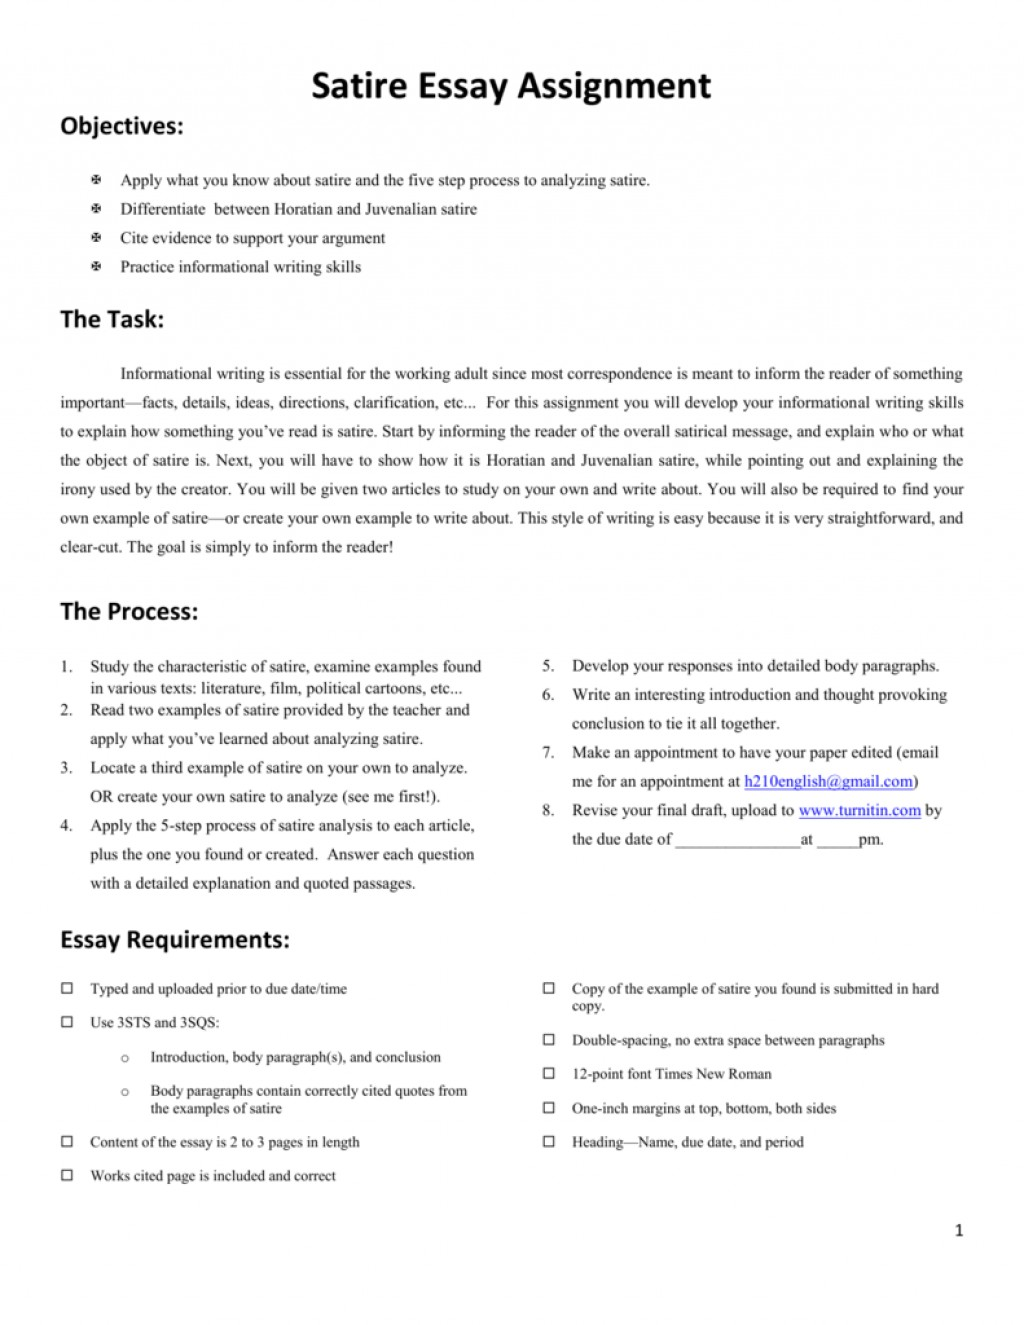 019 How To Write Satire Essay Example 009684950 1 Fascinating A On Obesity Outline Essay-example Large